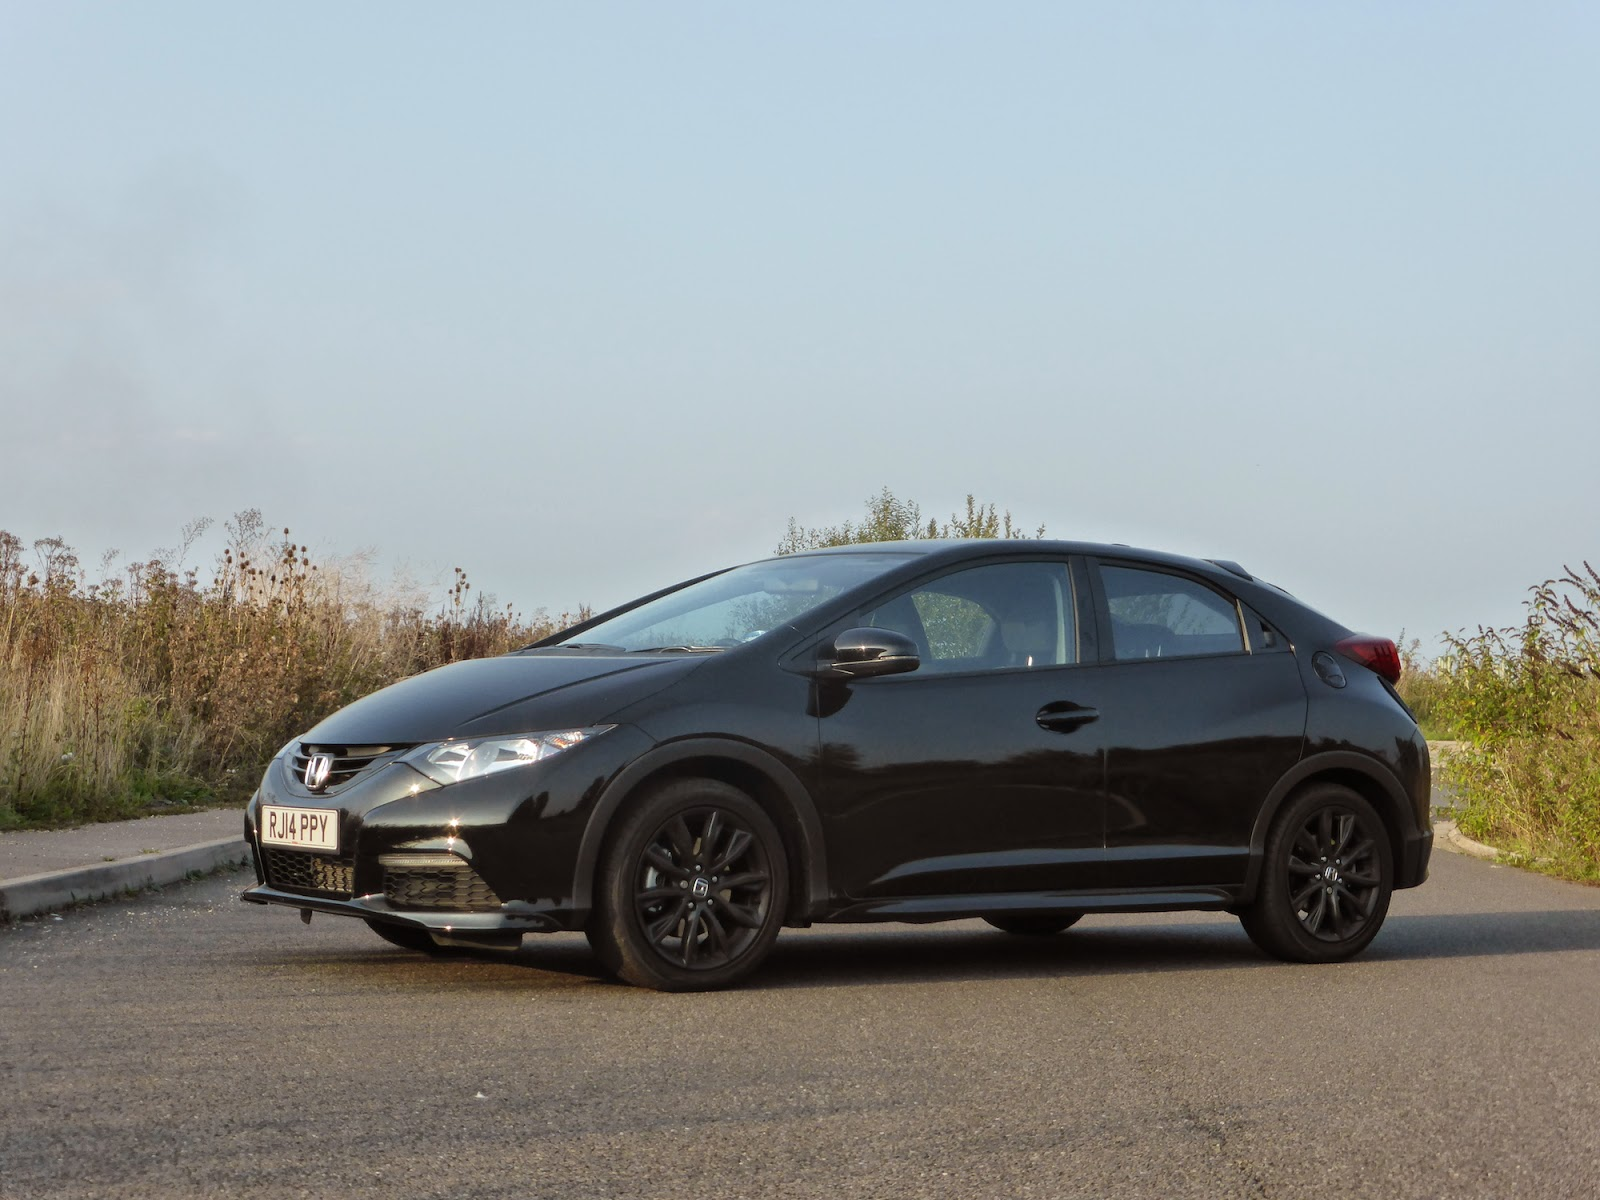 2014 Honda Civic Black Edition 1.6 i-DTEC